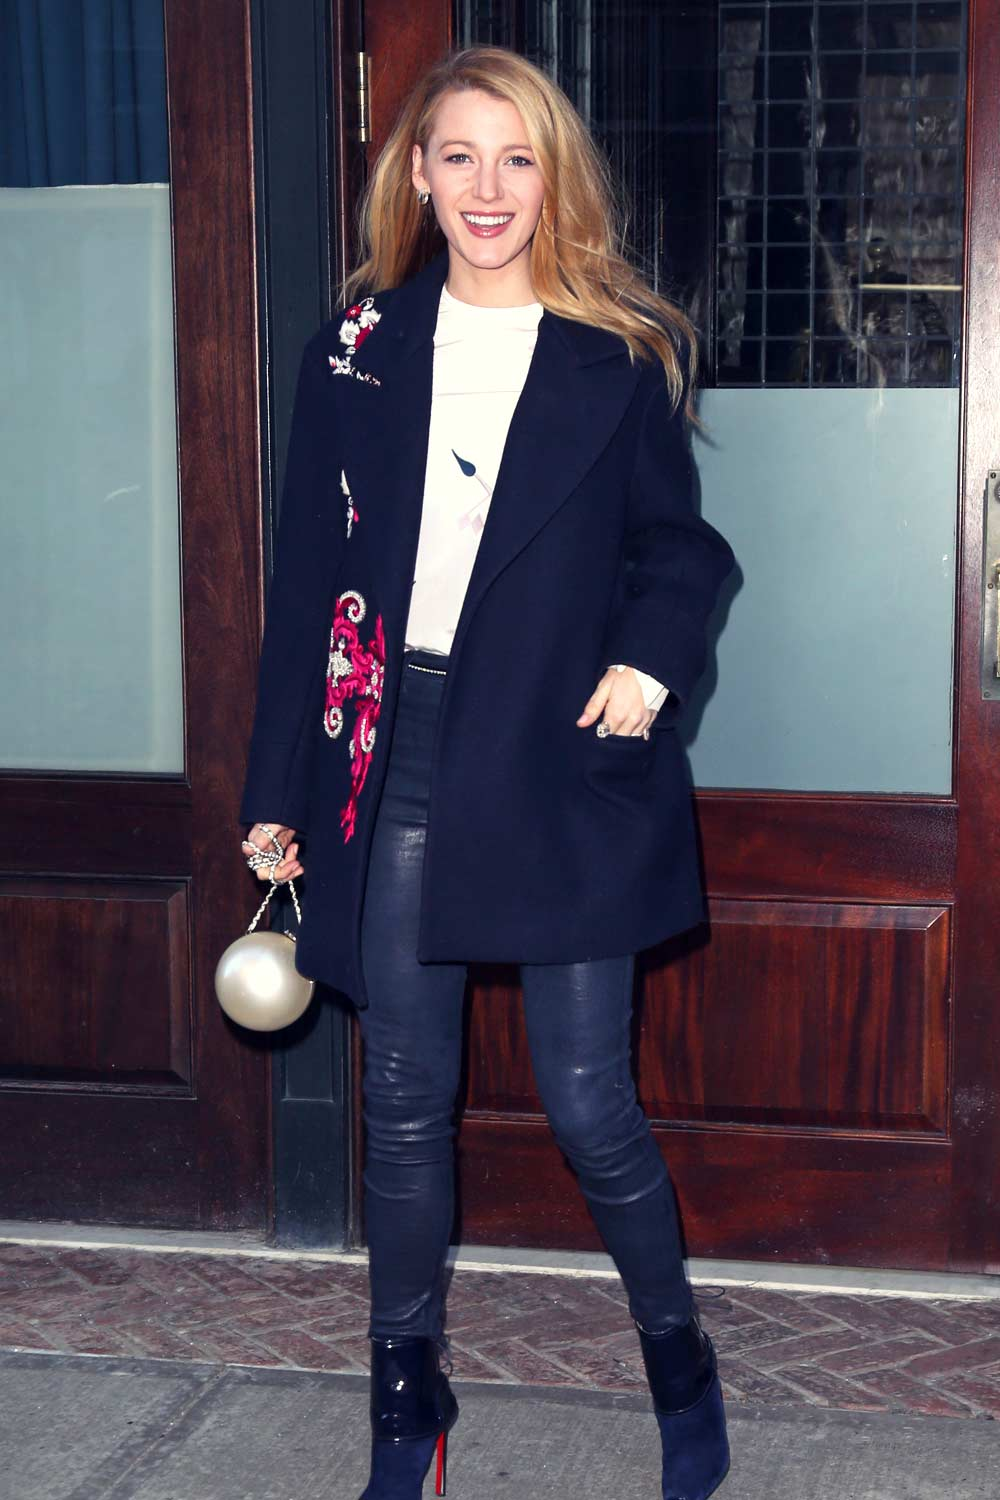 Blake Lively leaving her hotel in New York City